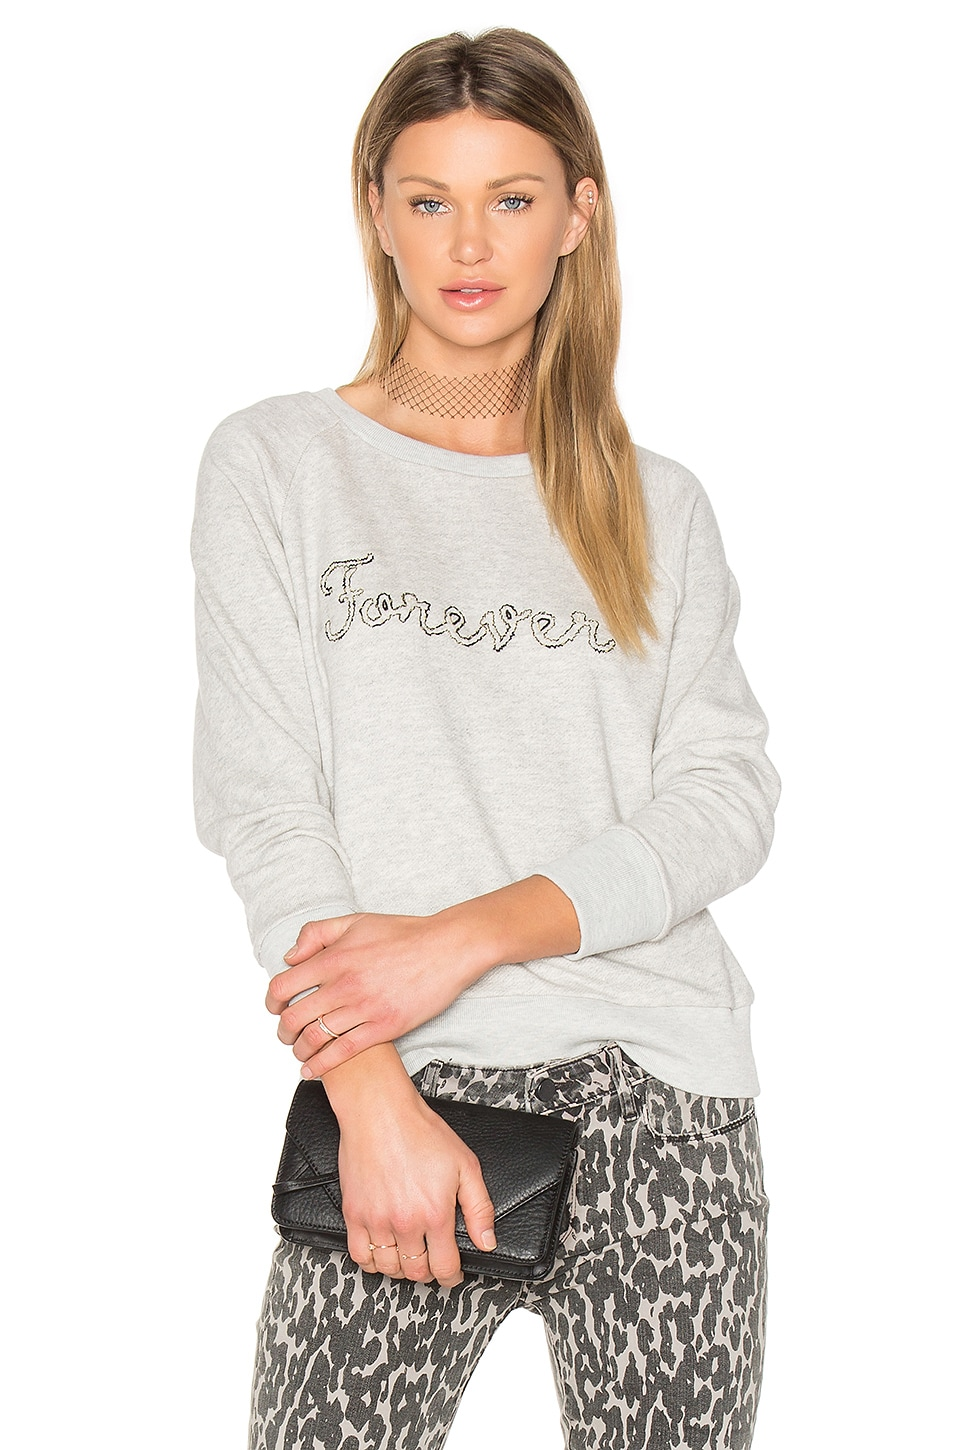 Rosie HW x PAIGE Forever Sweatshirt by Paige